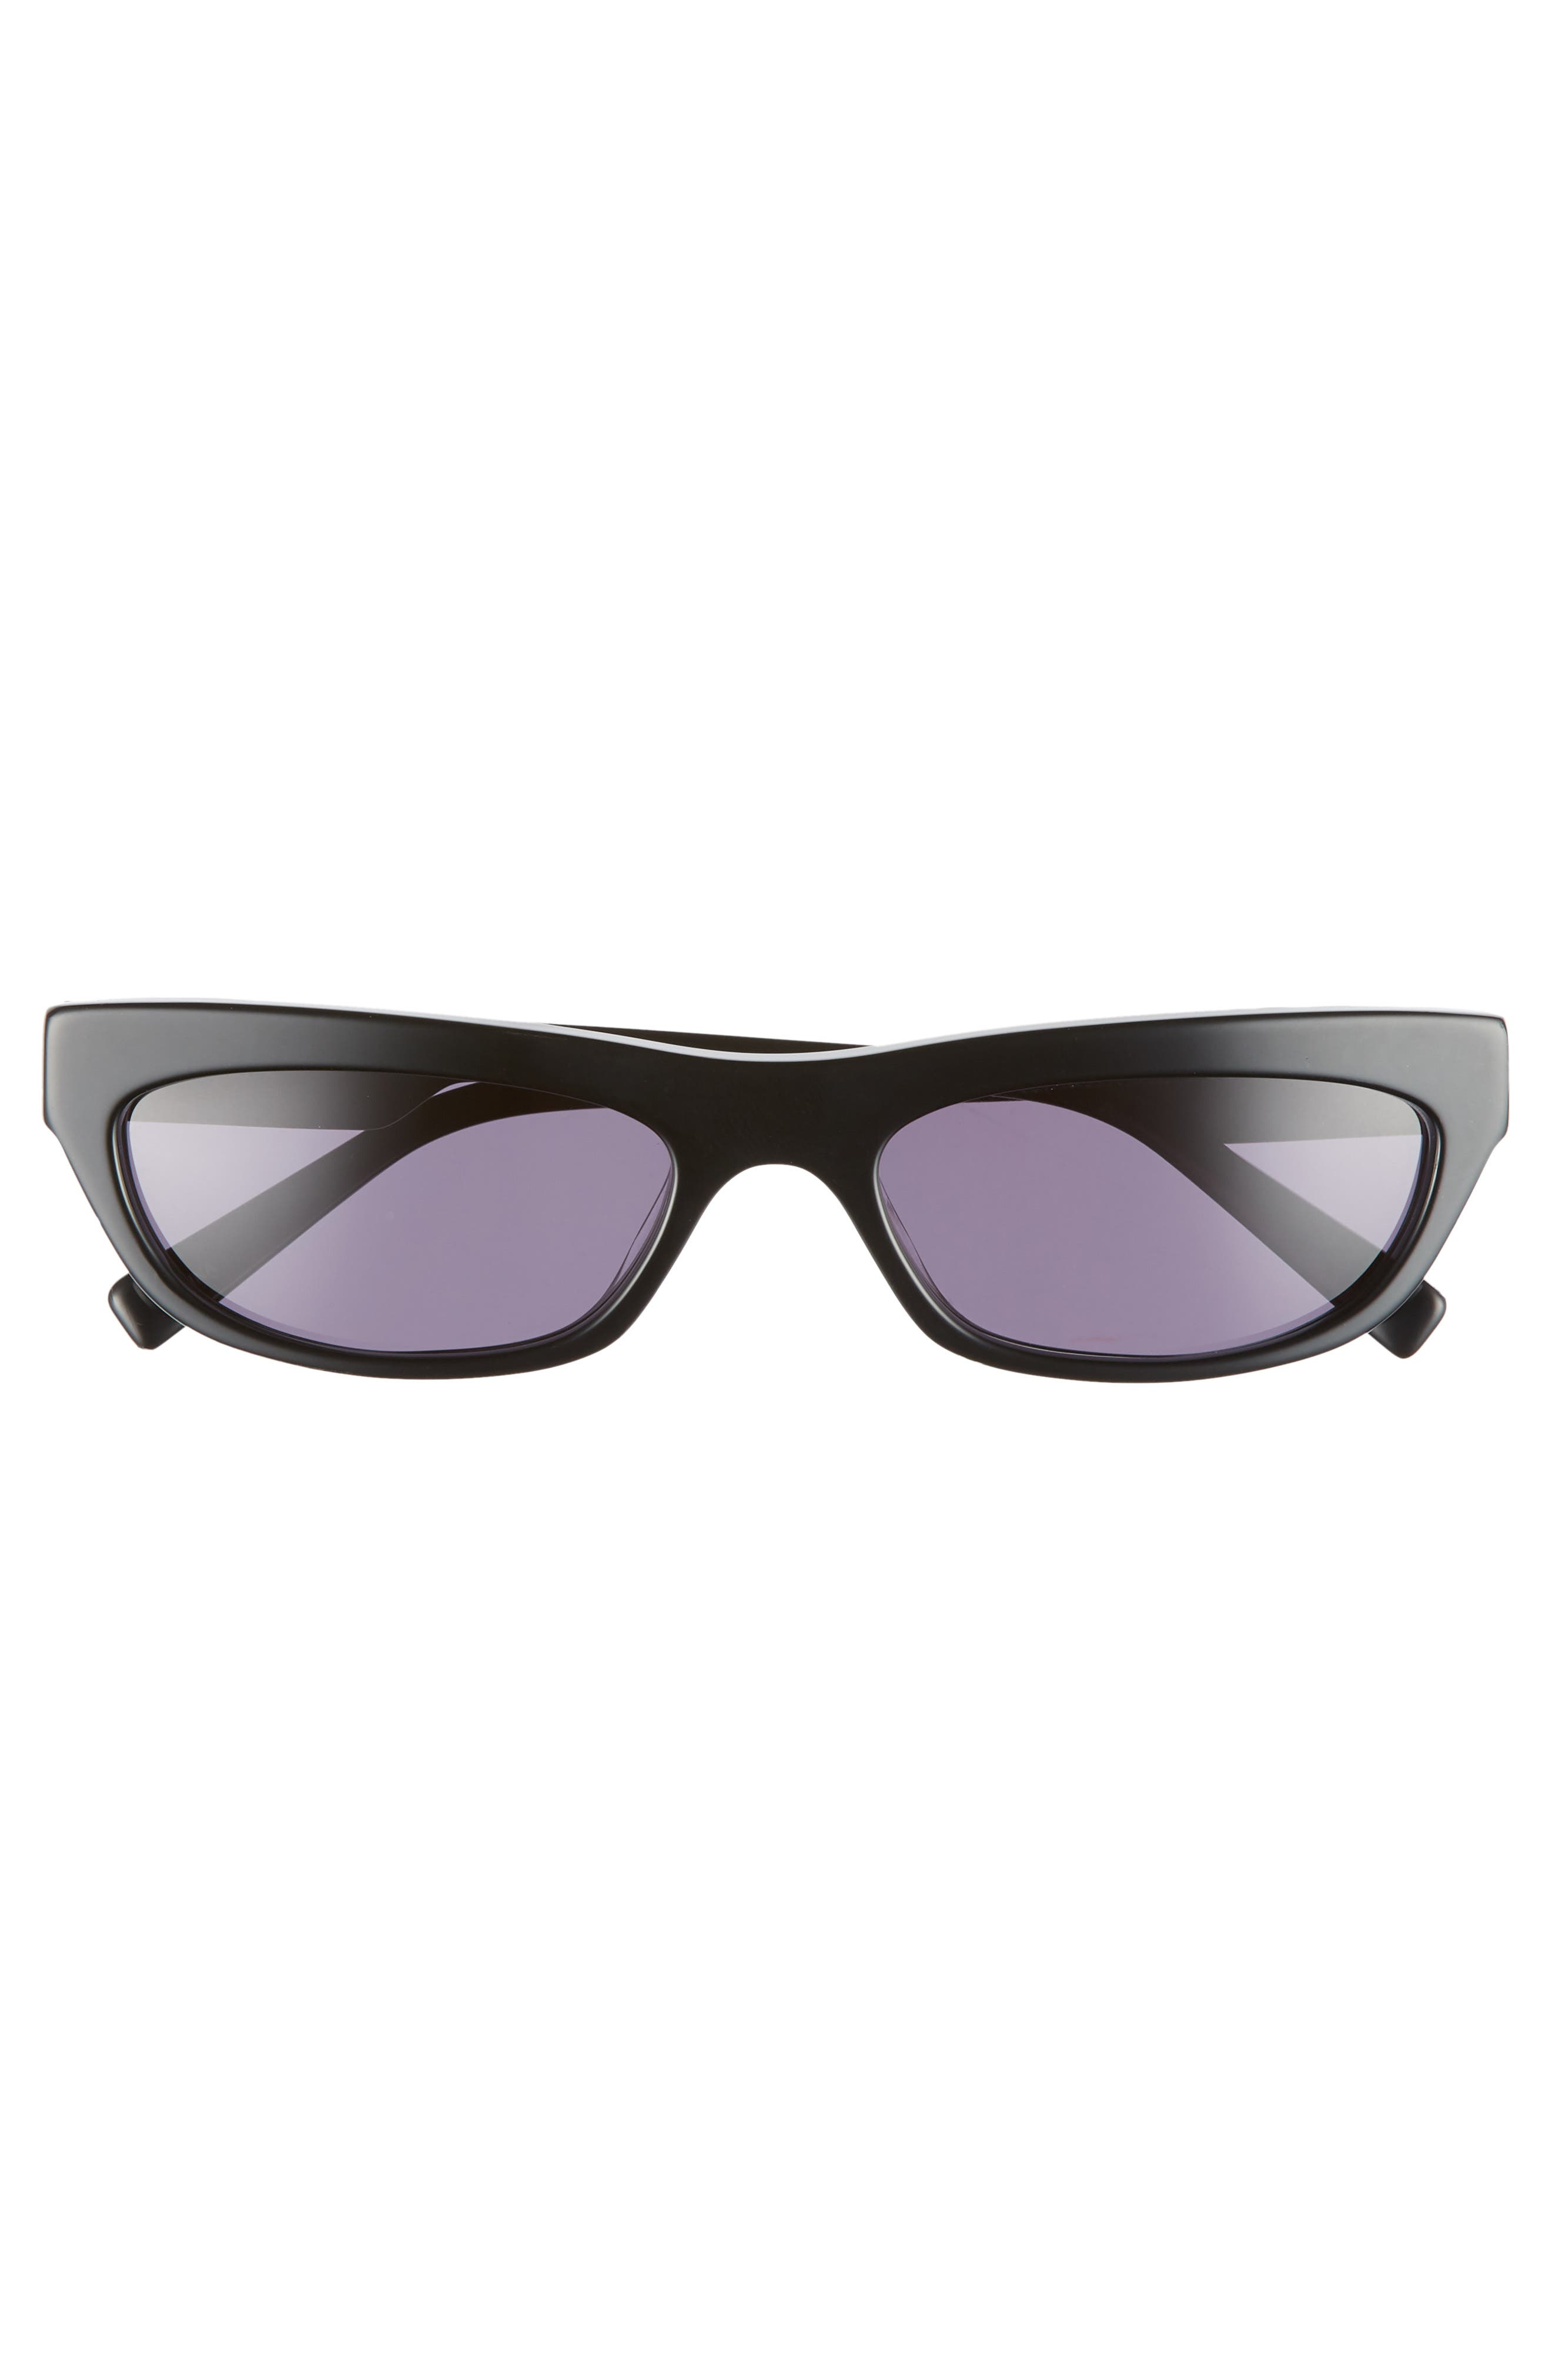 Courtney 55mm Cat Eye Sunglasses,                             Alternate thumbnail 3, color,                             001